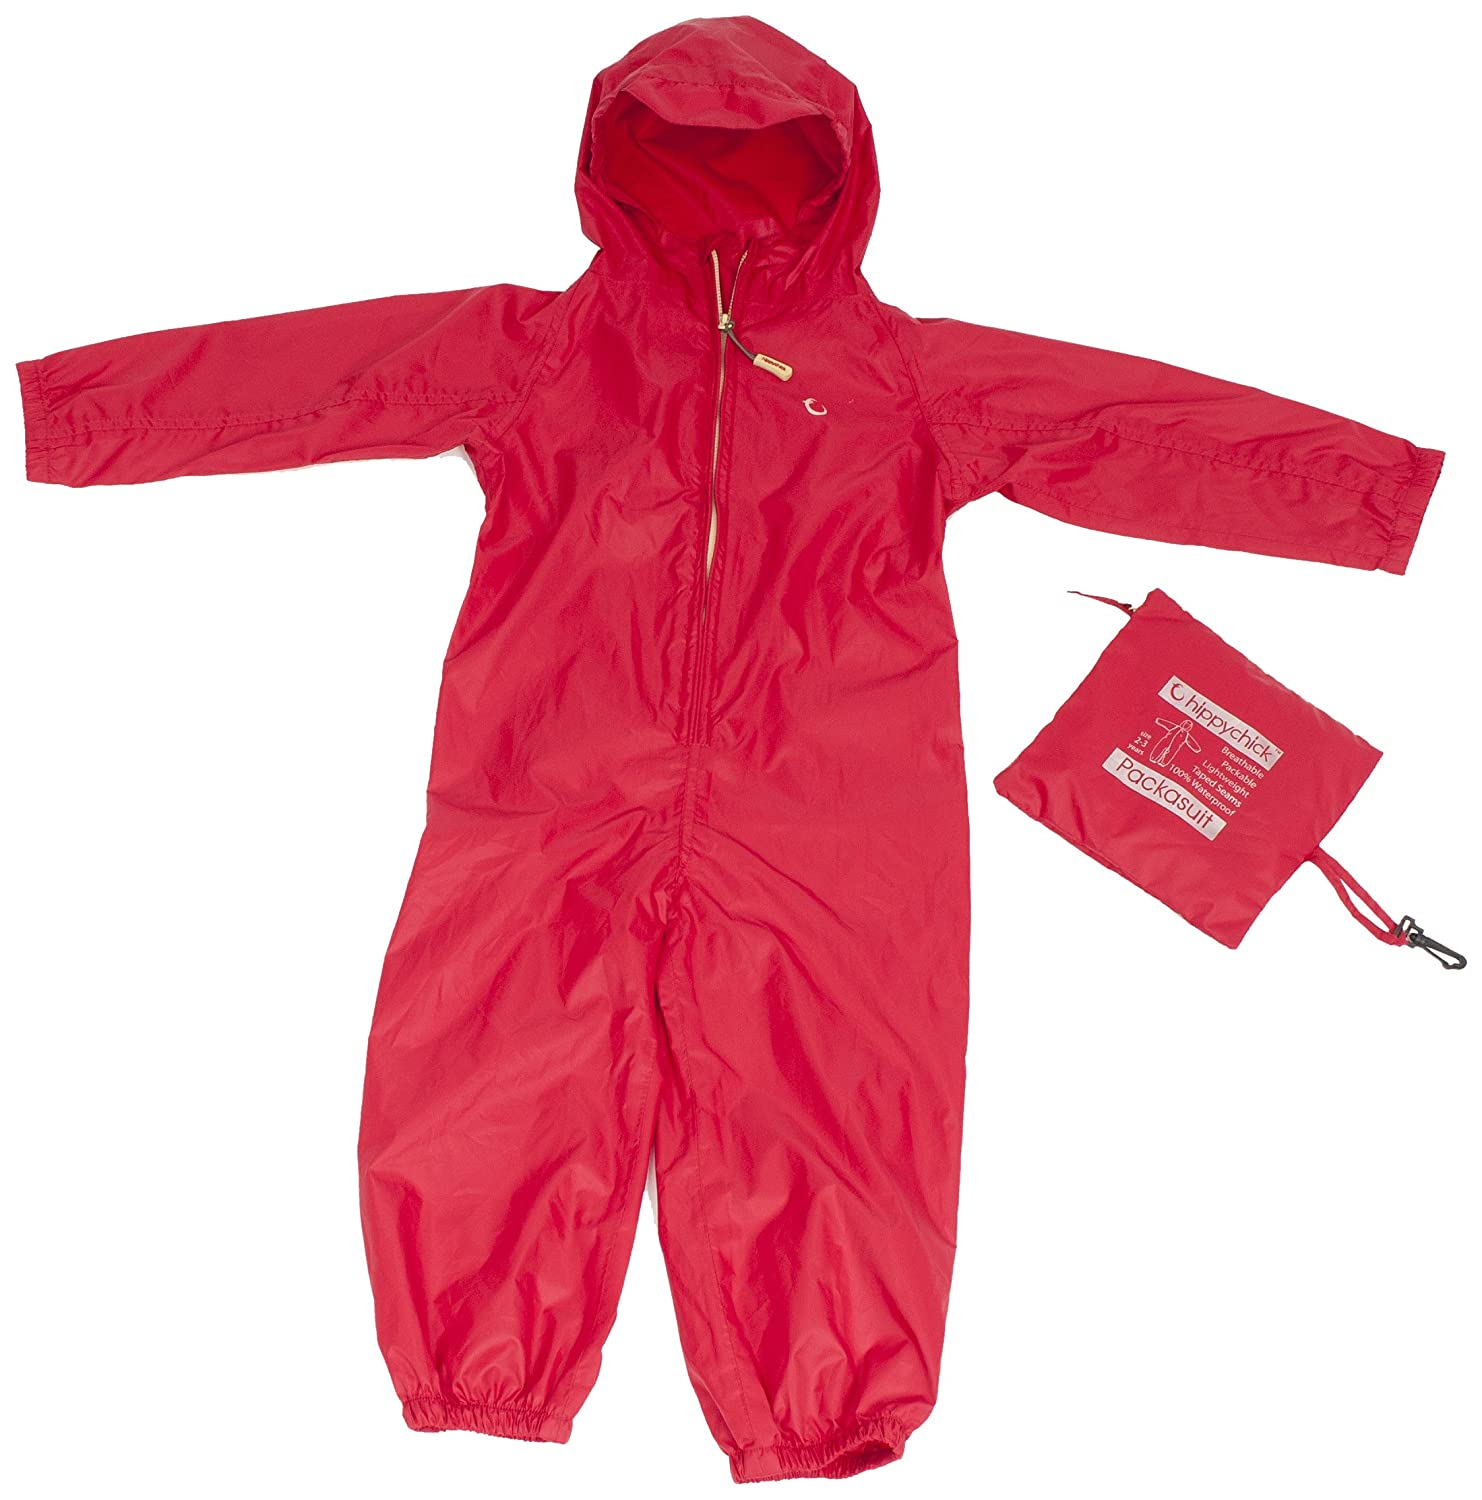 Hippychick Baby, Toddler & Child Waterproof 'Packasuit' All-in-One Snow/Rain Suit